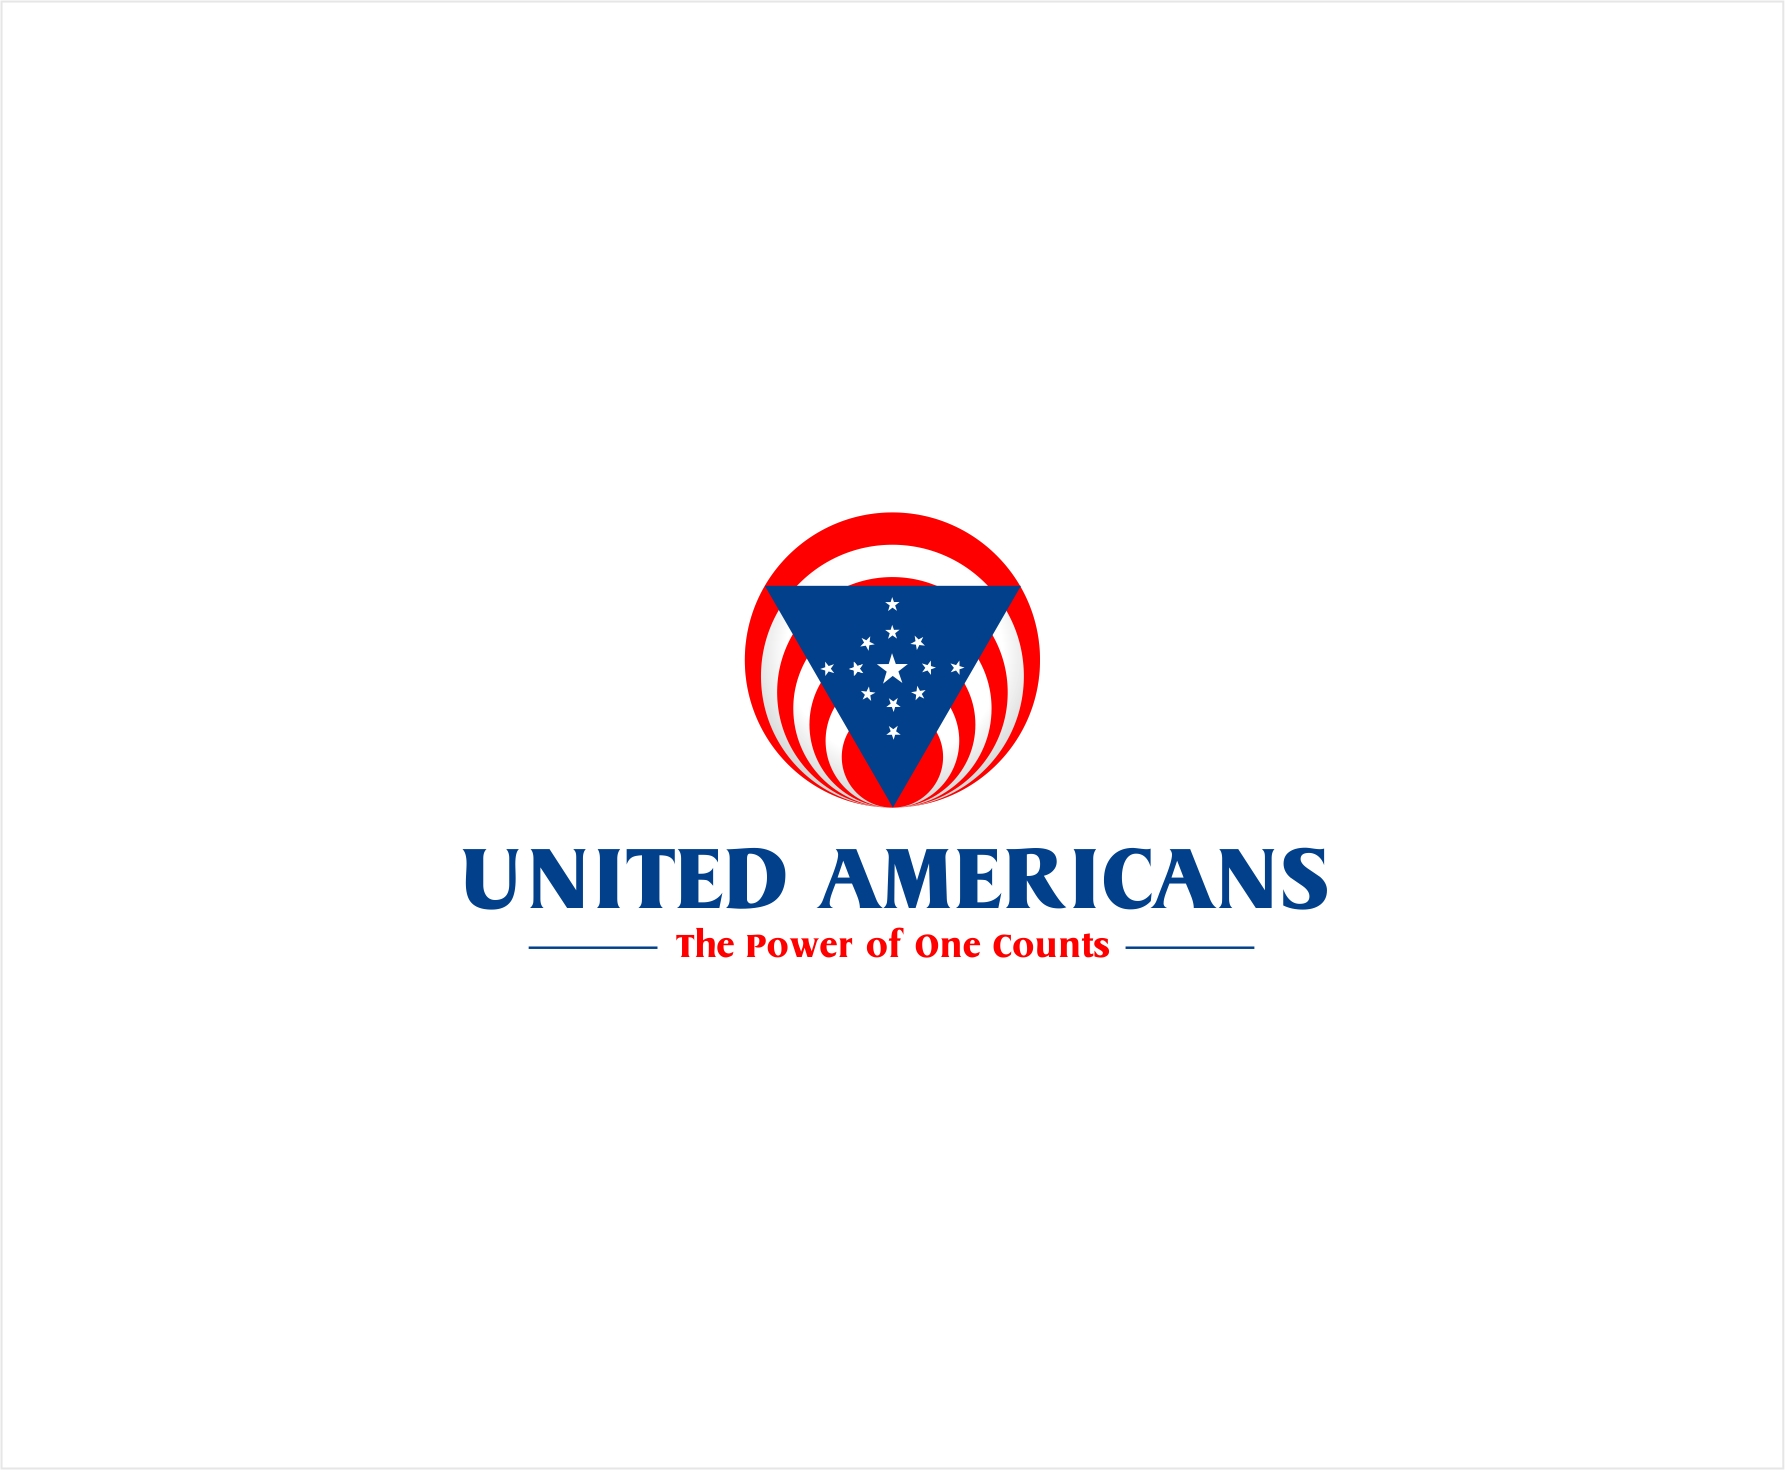 Logo Design by haidu - Entry No. 69 in the Logo Design Contest Creative Logo Design for United Americans.